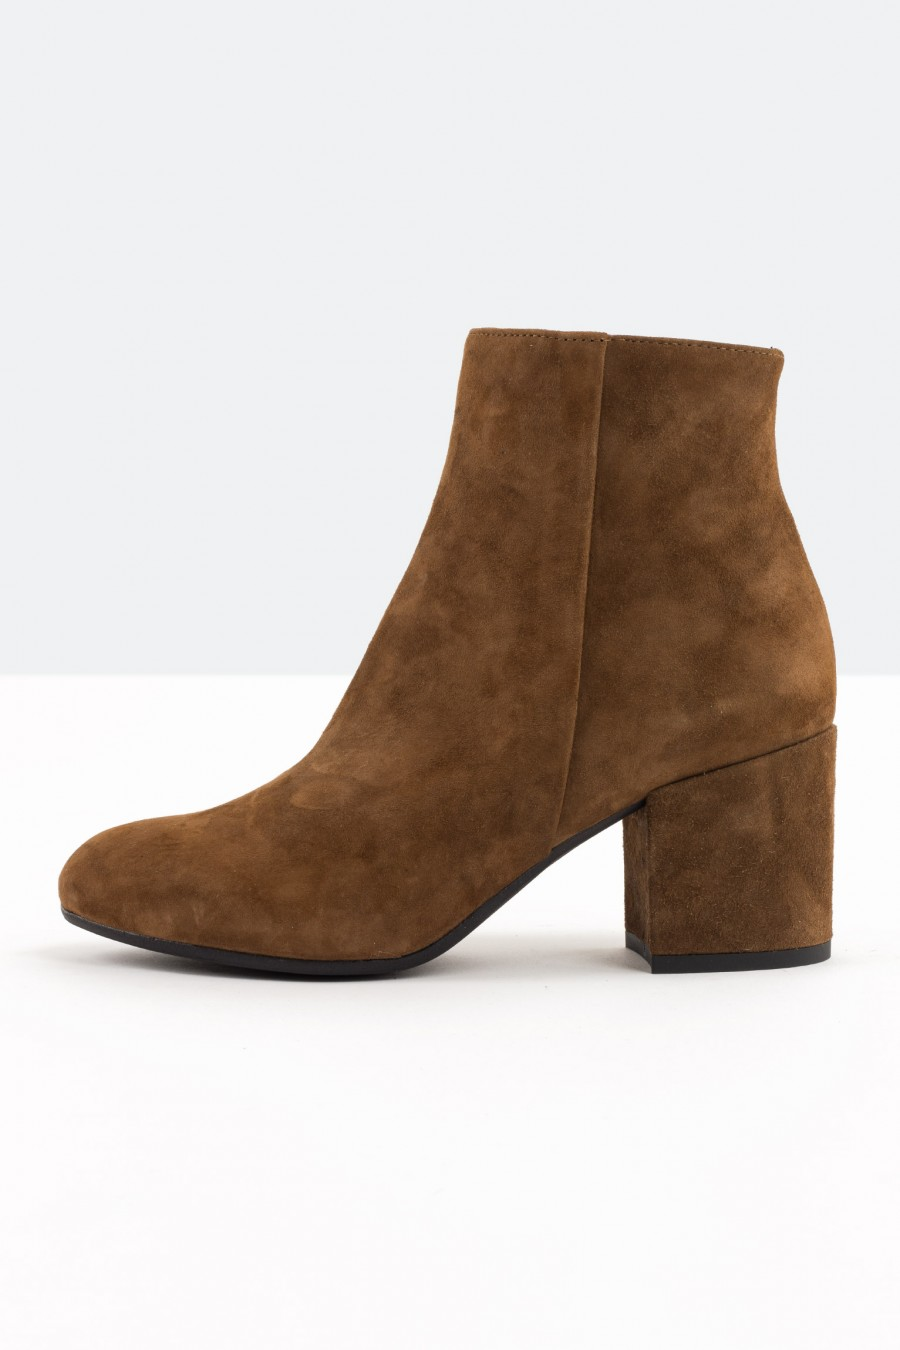 Low heeled tobacco ankle boots